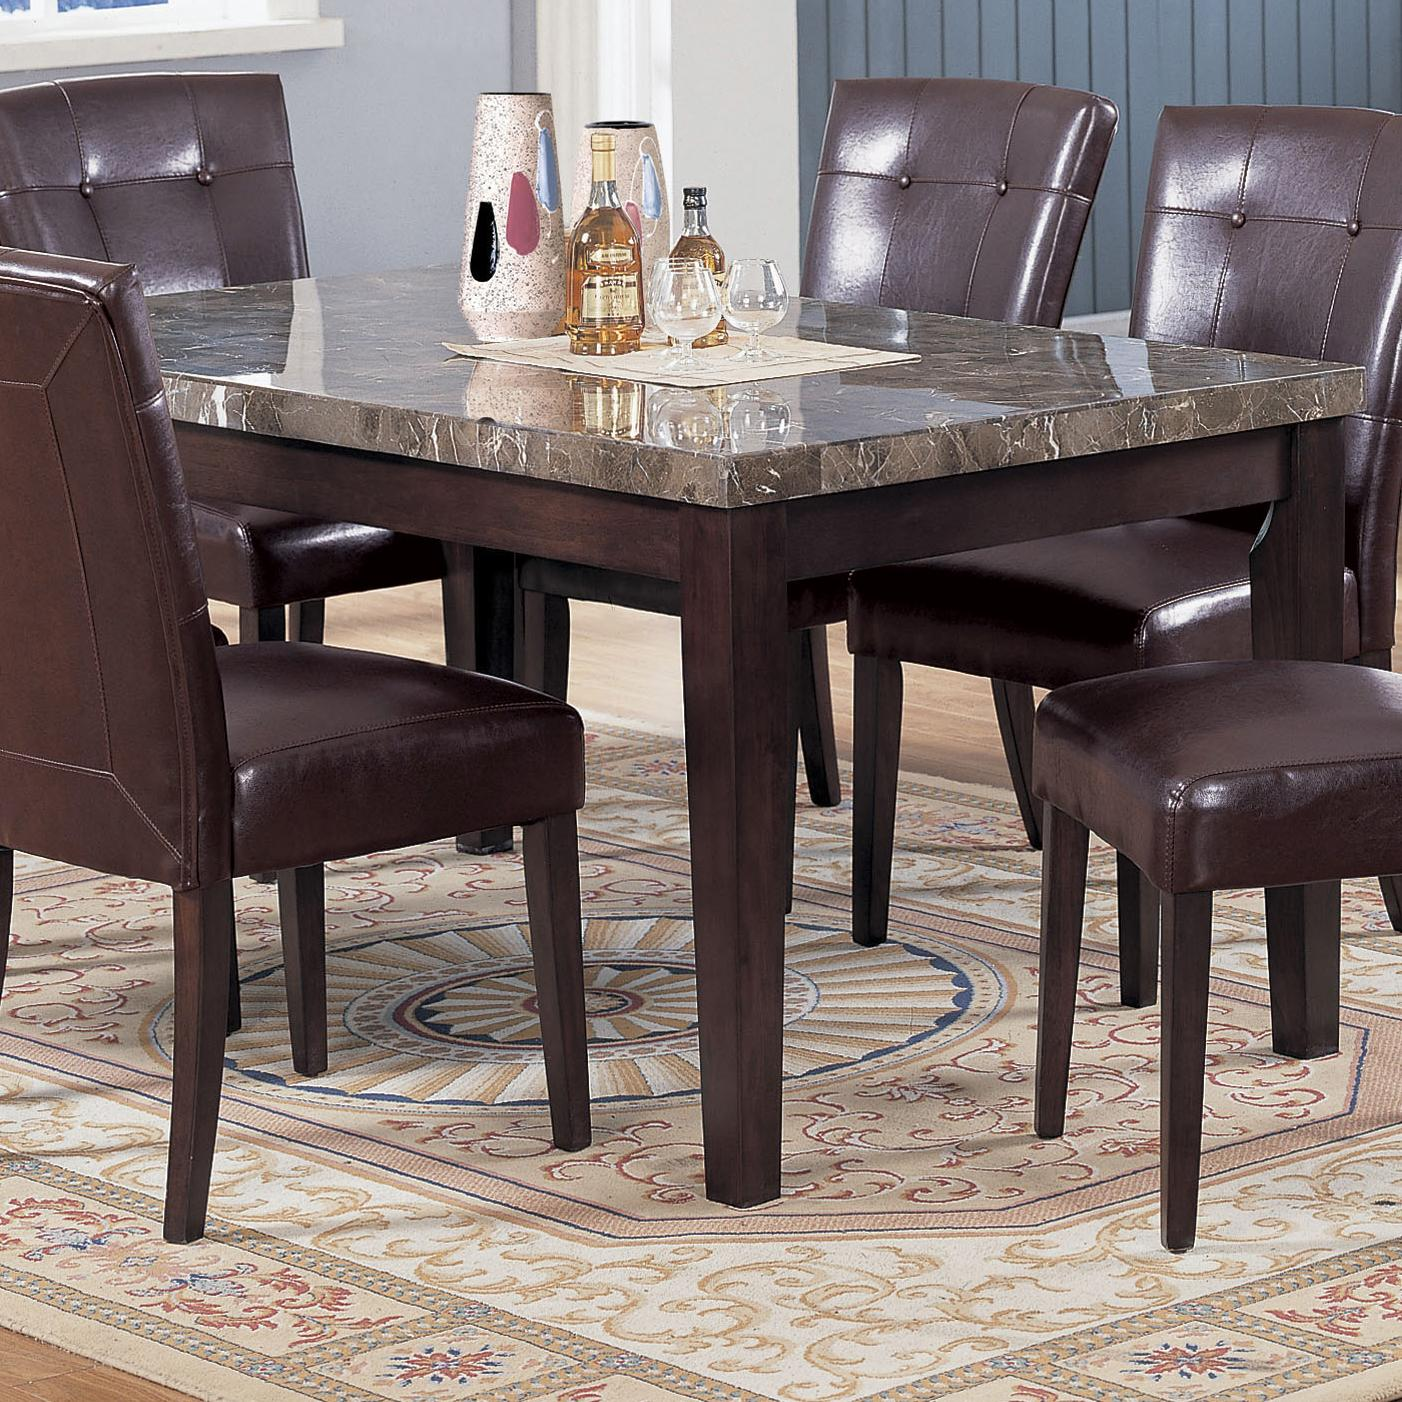 Acme Furniture 7058 07058 Rectangular Dining Table With Black Marble Top Del Sol Furniture Dining Room Table